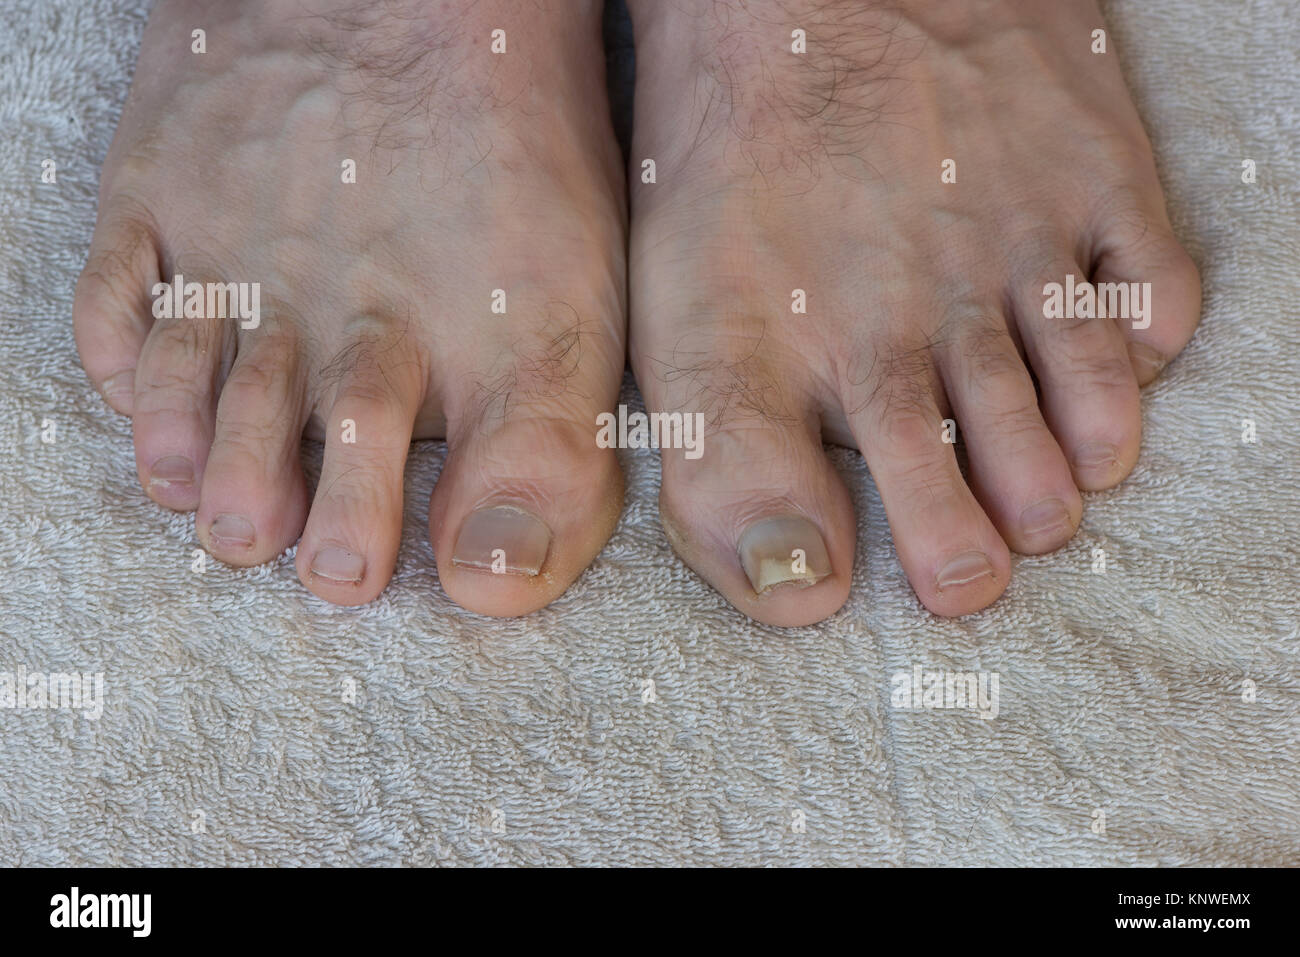 Damaged Nail Bed Stock Photos & Damaged Nail Bed Stock Images - Alamy